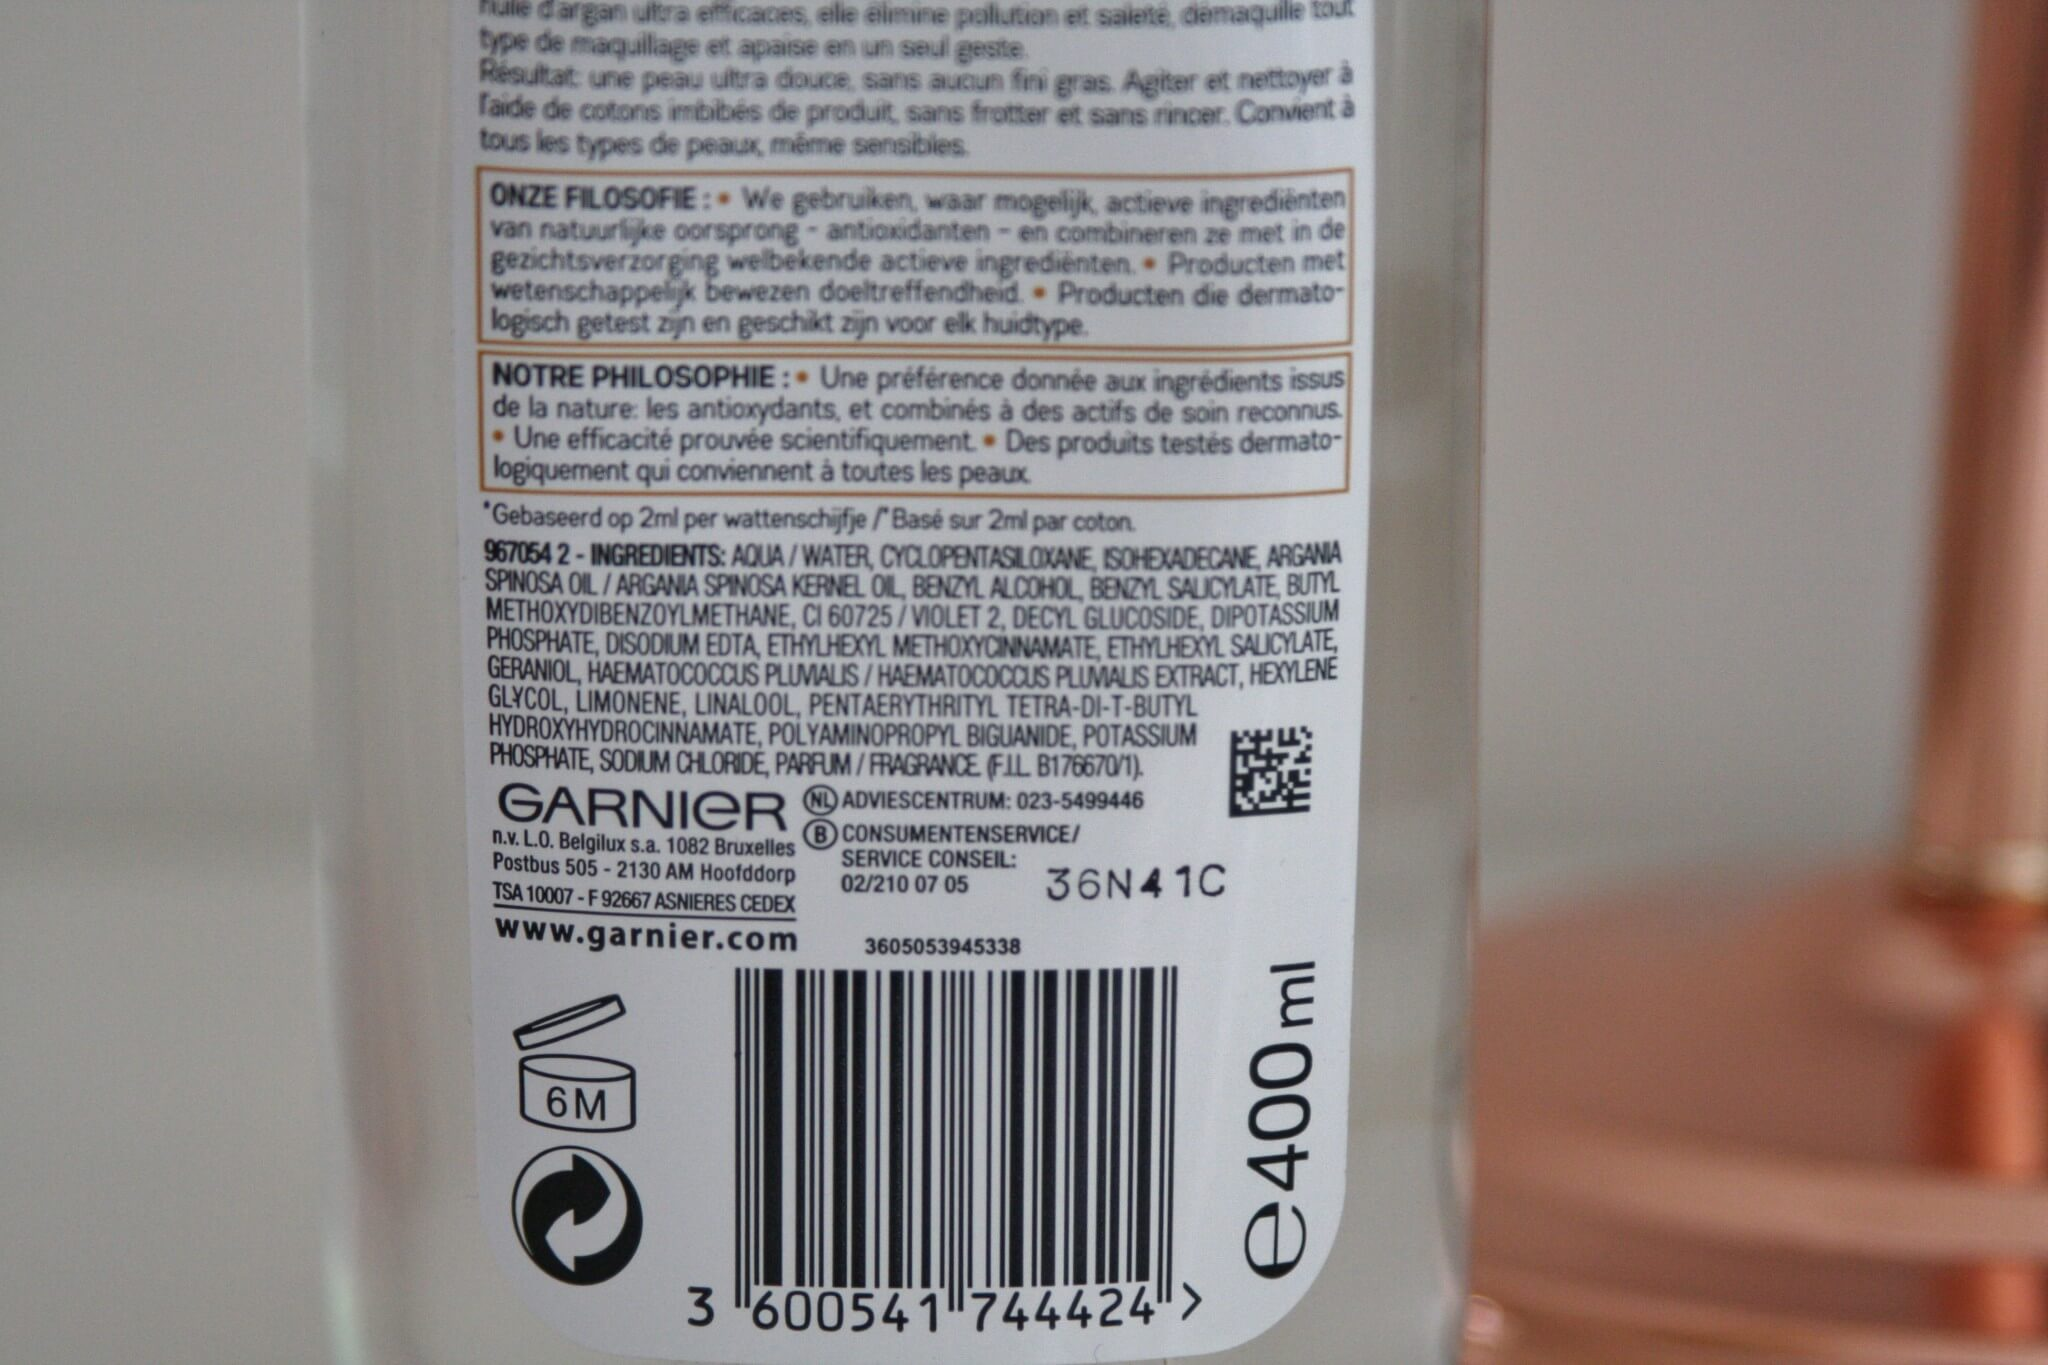 Garnier Micellair Water in Olie